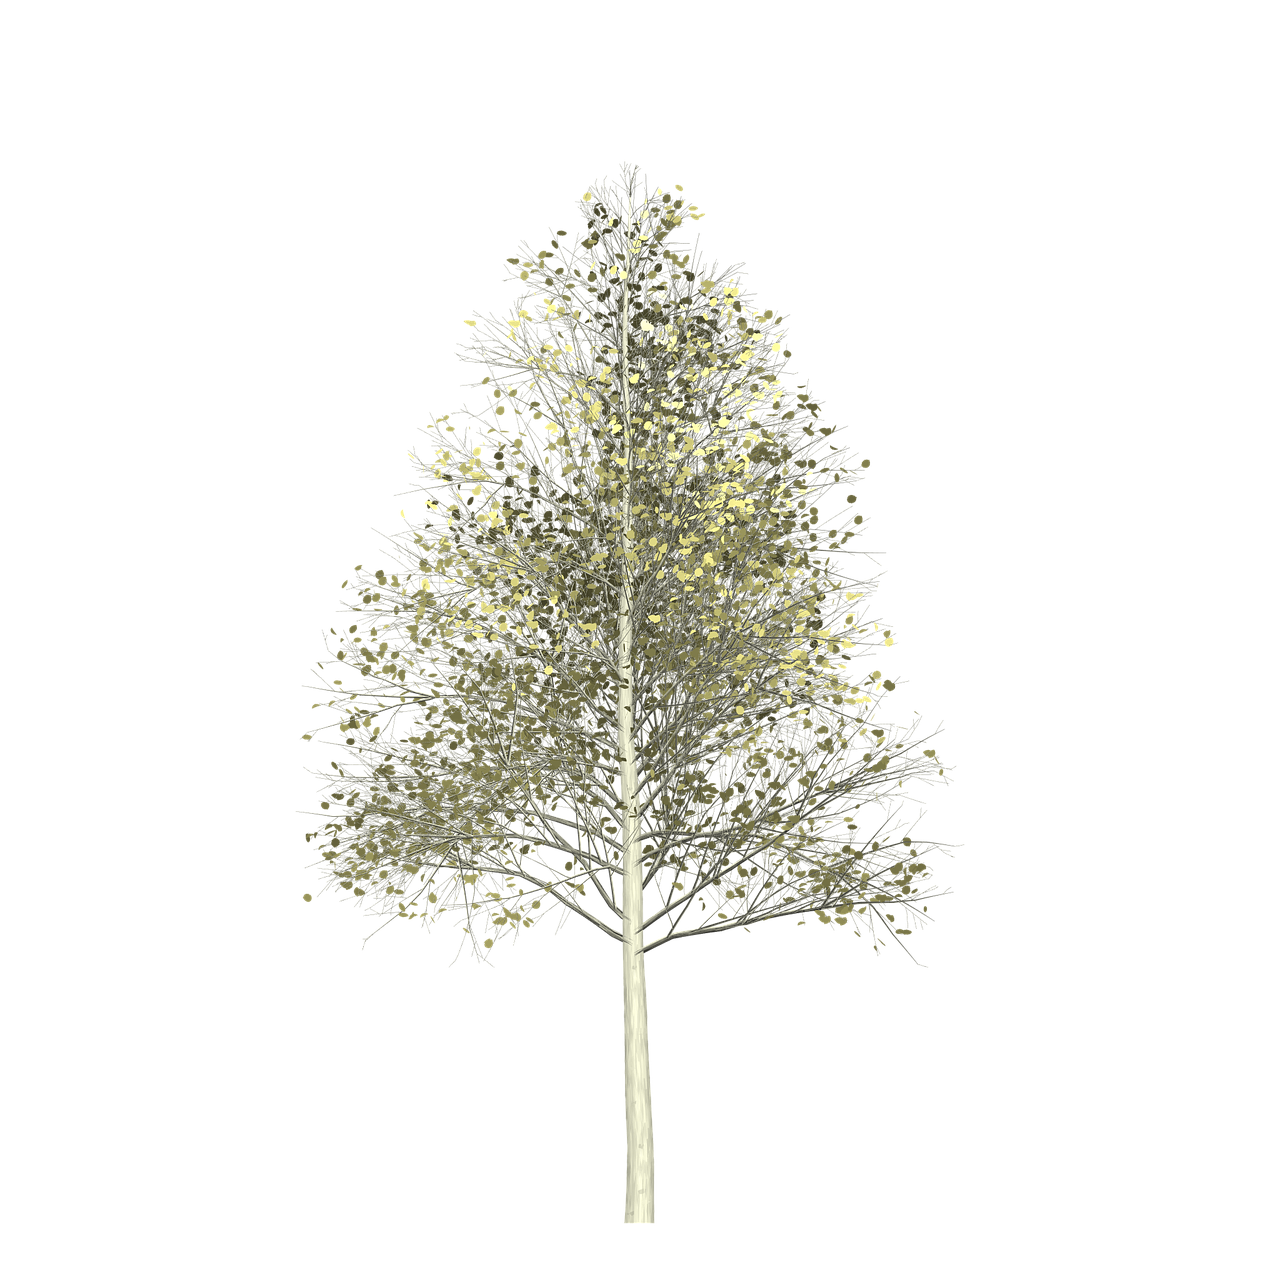 Forest Aspen Tree Painted Tree Nature Yellow Imag Forest Aspen Tree Painted Tree Nature Yellow Im Aspen Trees Painting Aspen Trees Autumn Trees